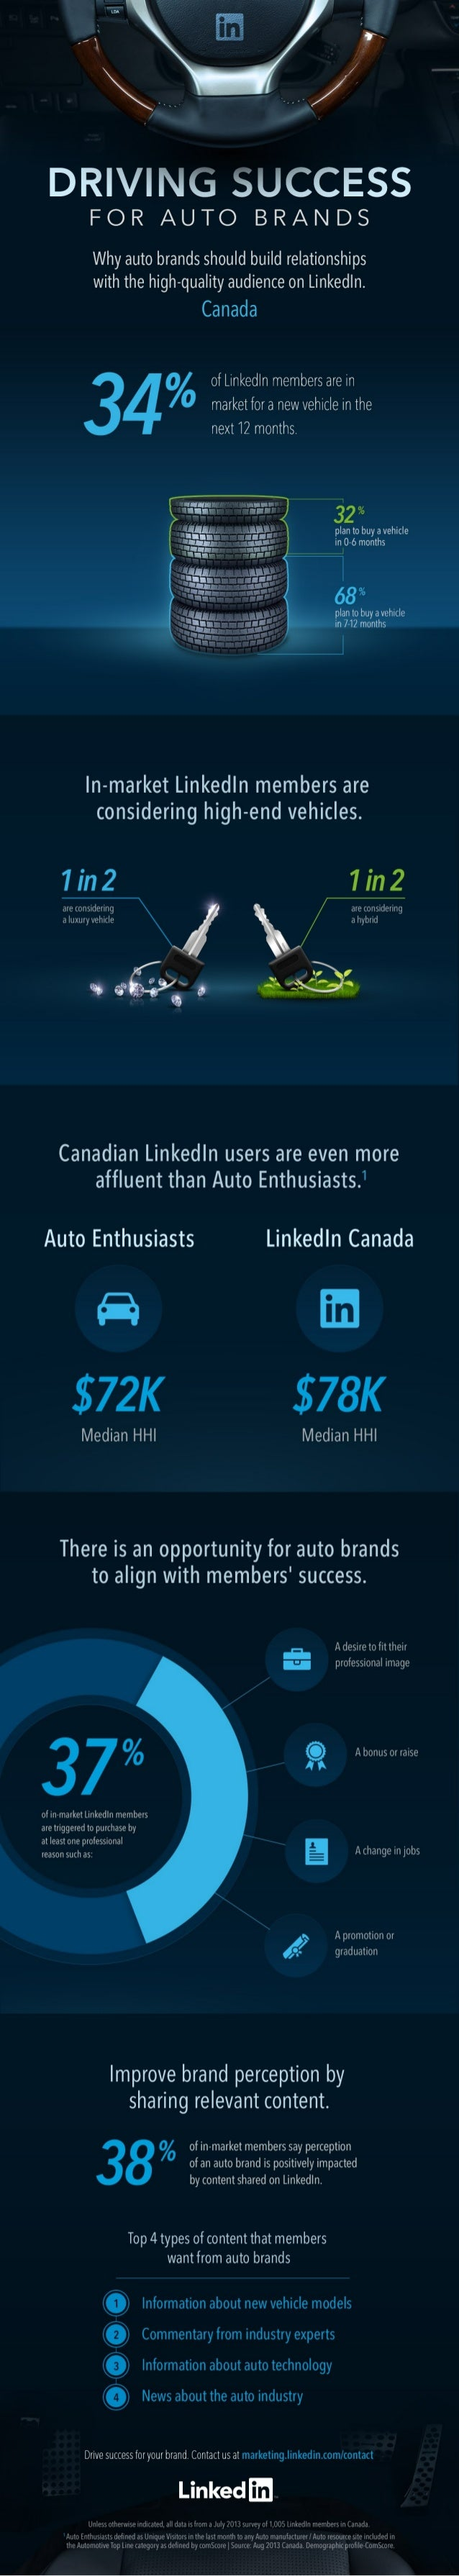 Canadian Automotive Research Infographic